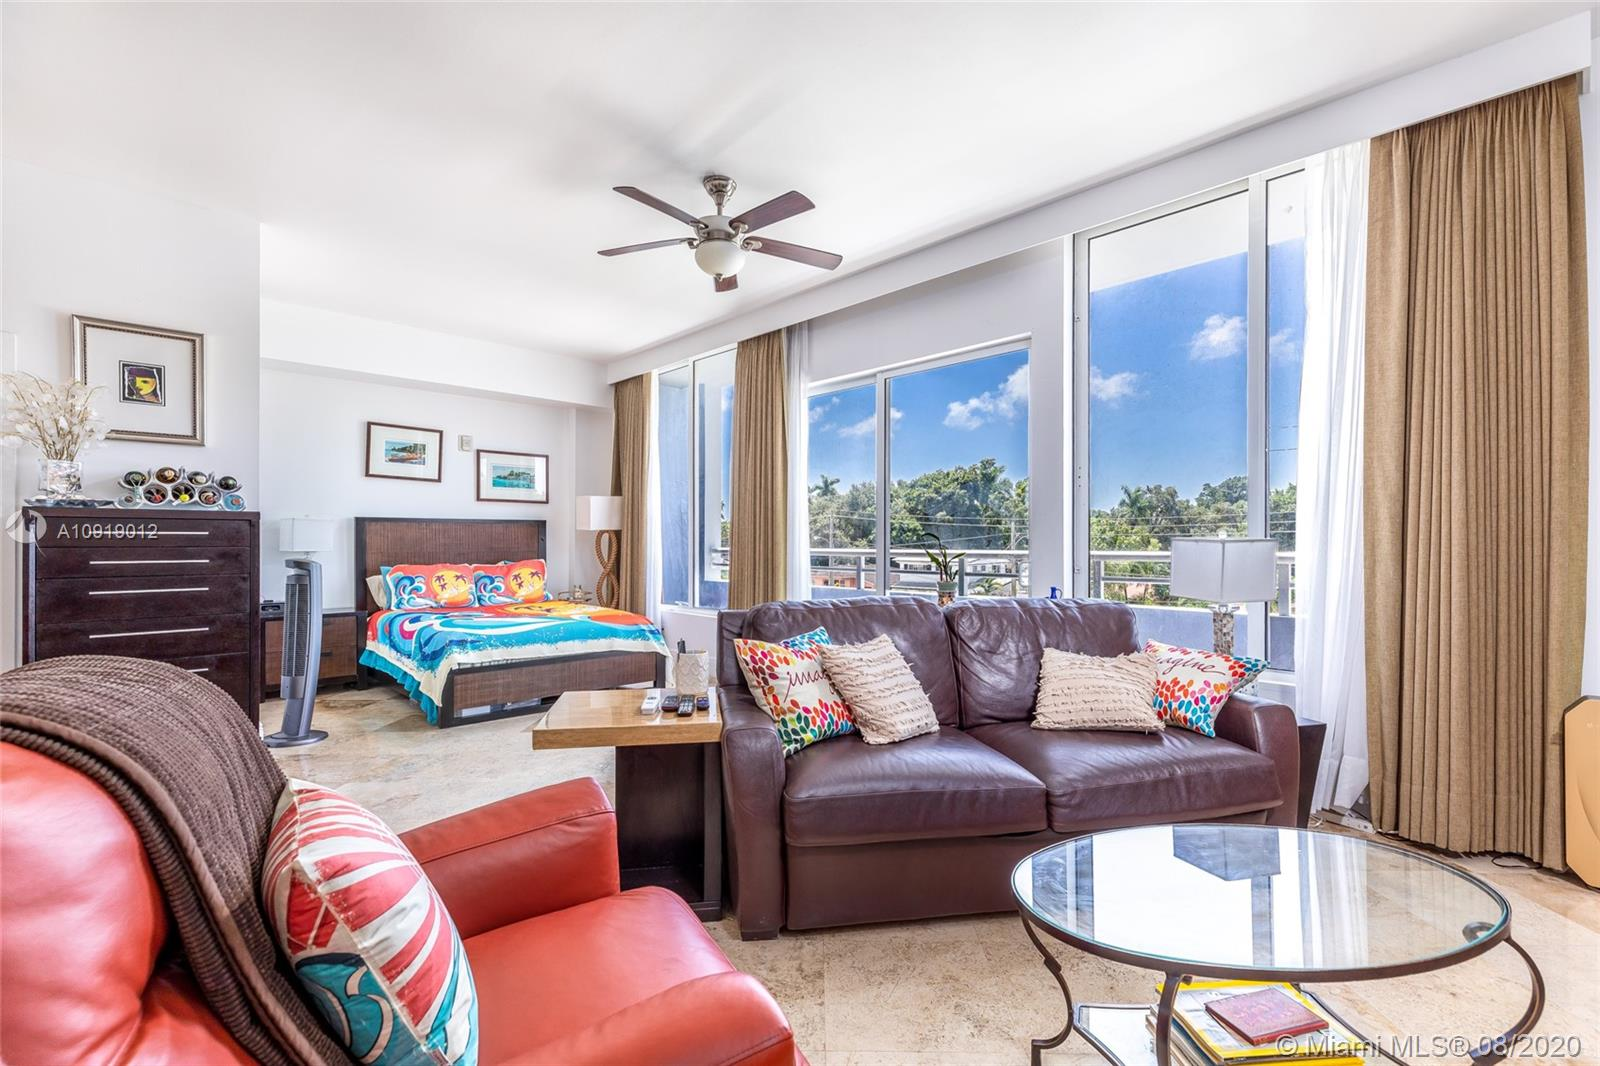 Live Work Play in Coconut Grove!!! Enjoy all the parks, cafe's, nightlife the Grove has to offer within walking distance of your new Condo.  This Boutique Bldg in the Heart of Coconut Grove with Rooftop Swimming and Patio great for entertaining or for a refreshing dip after those long beach days.  What else can you ask for centrally located in the Coconut Grove. Large spacious unit with floor to ceiling windows, volume 10 ft ceilings, Balcony, Marble Floors, 2 Full Bathrooms, walk in closet, pet friendly,  Assigned Garage Parking, Washer and Dryer, Updated Kitchen and Baths.  Come check it out and star enjoying your new lifestyle.. Call/Text LA for showing. See you at Monty's;)